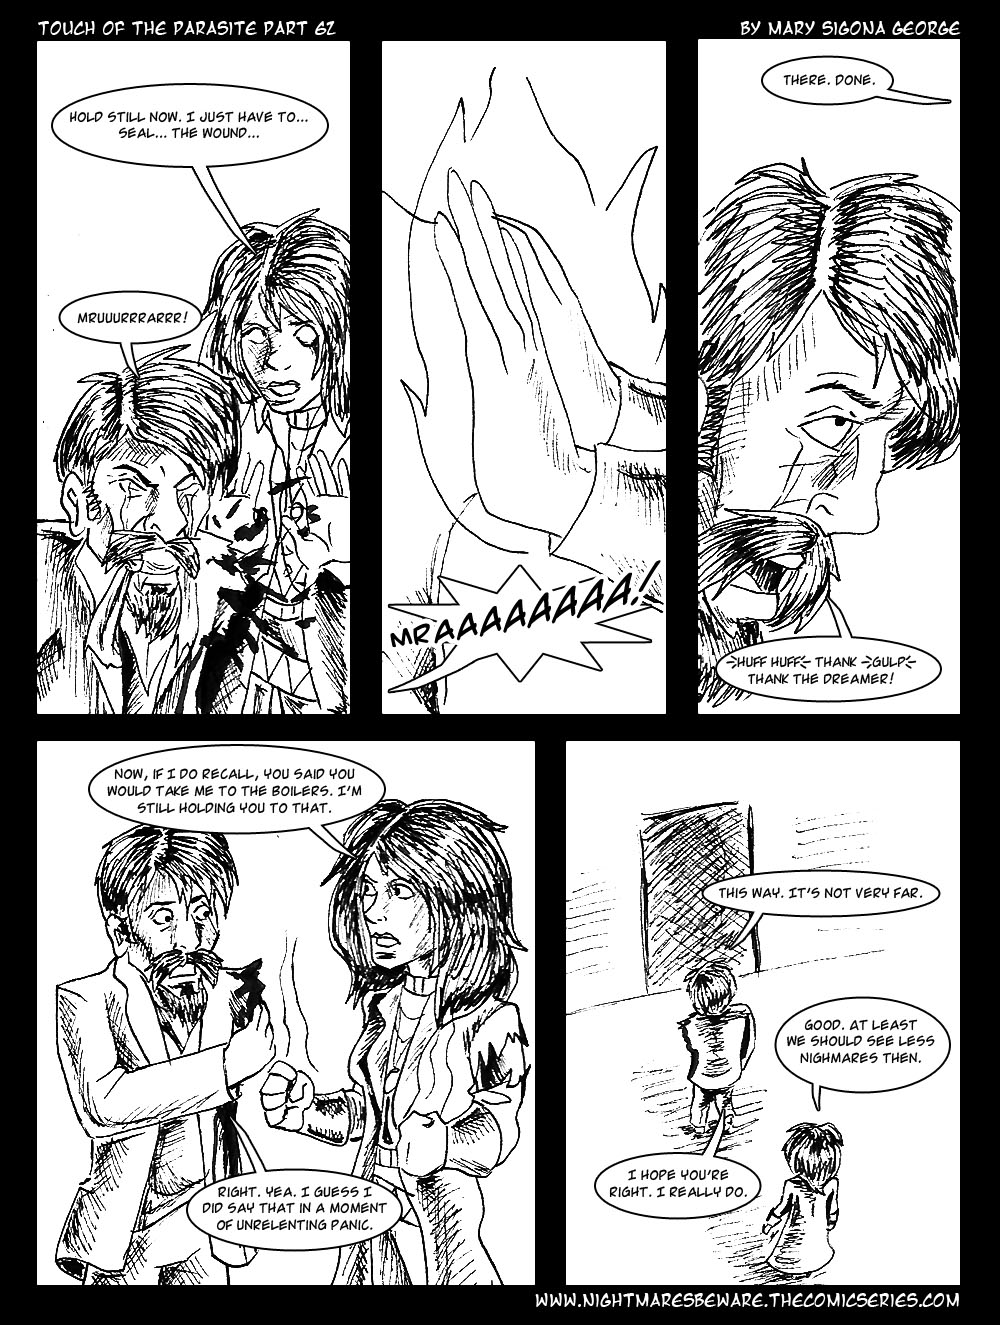 Touch of the Parasite: Part 62